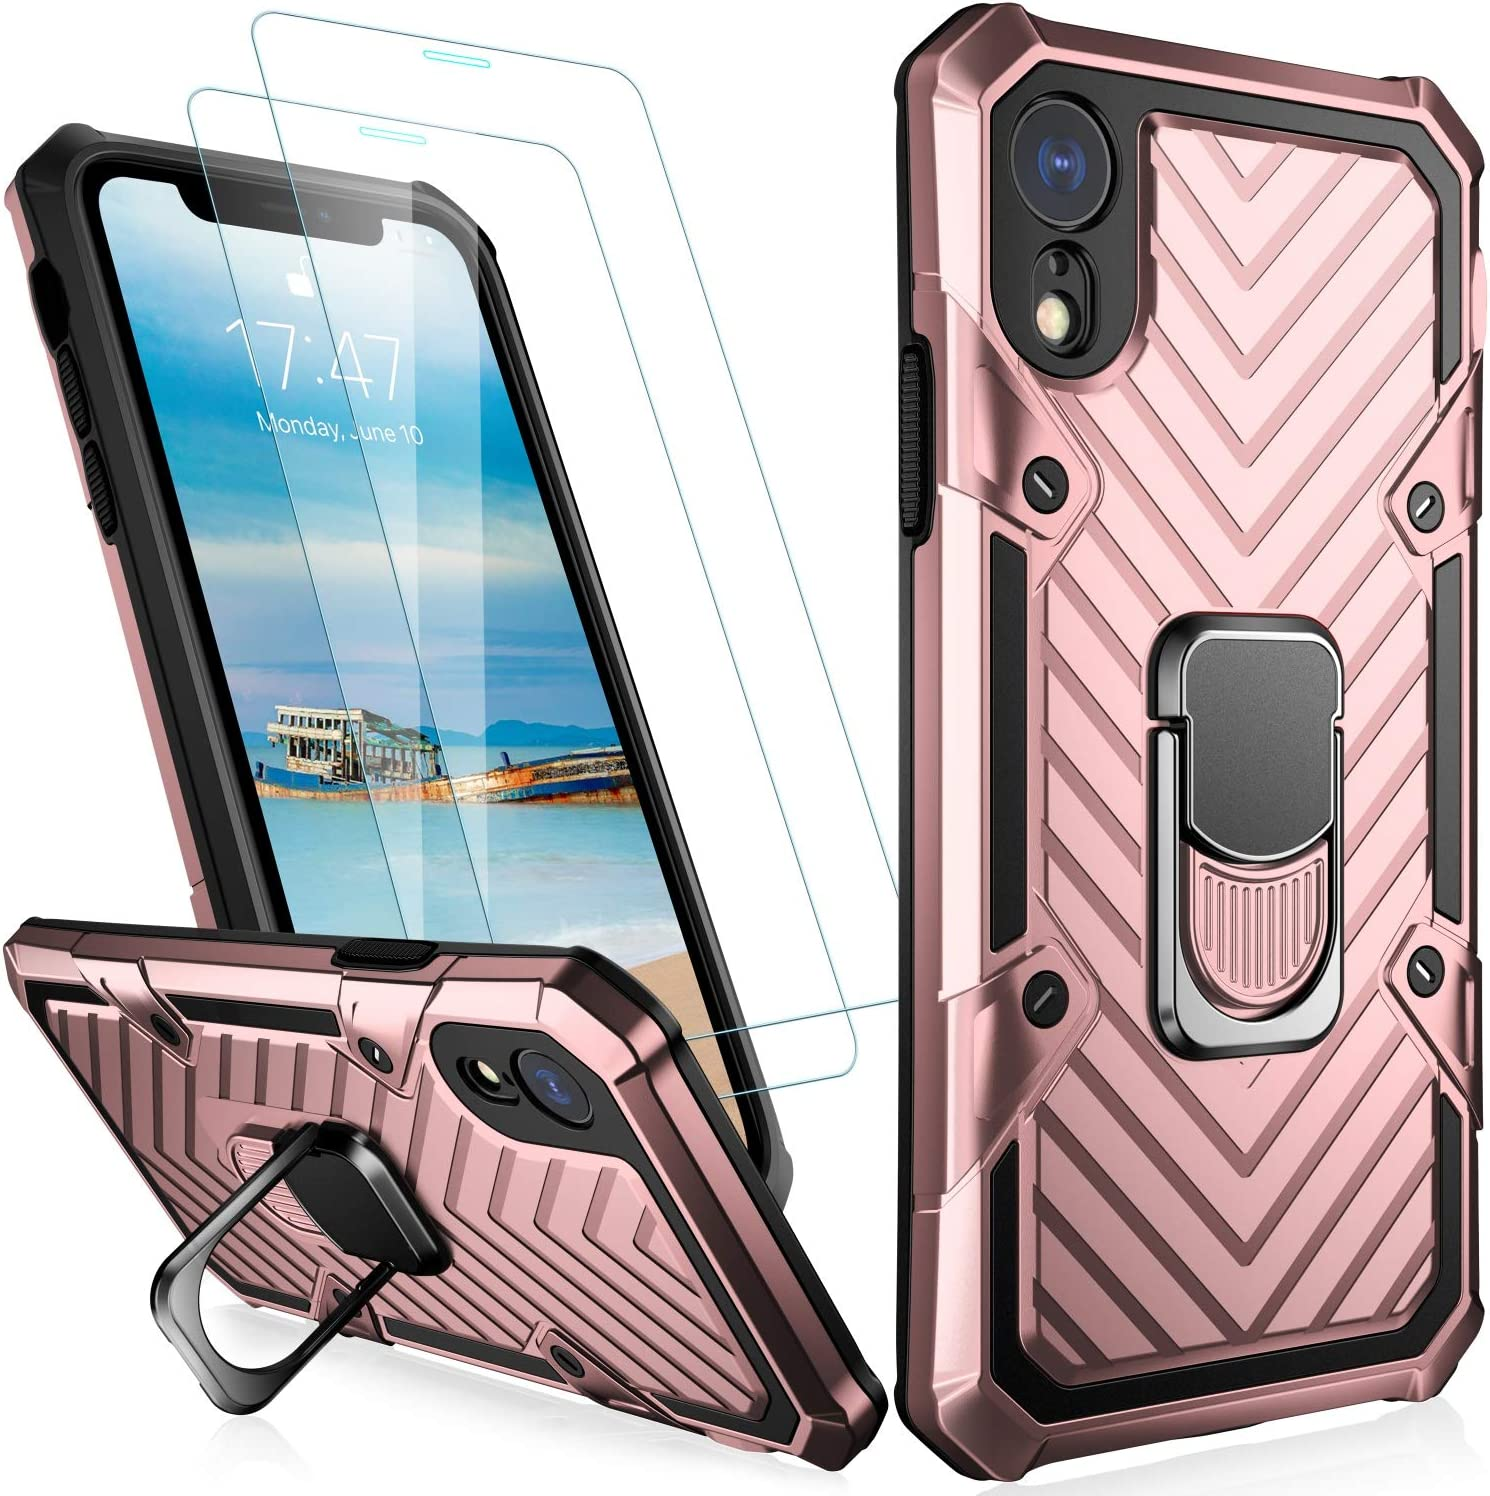 MERRO iPhone Xs Max Case with Screen Protector[2 Pack],Pass 16ft. Drop Tested Military Grade Heavy Duty Shockproof Cover with Kickstand,Protective Phone Case for Apple iPhone Xs Max Rose Gold